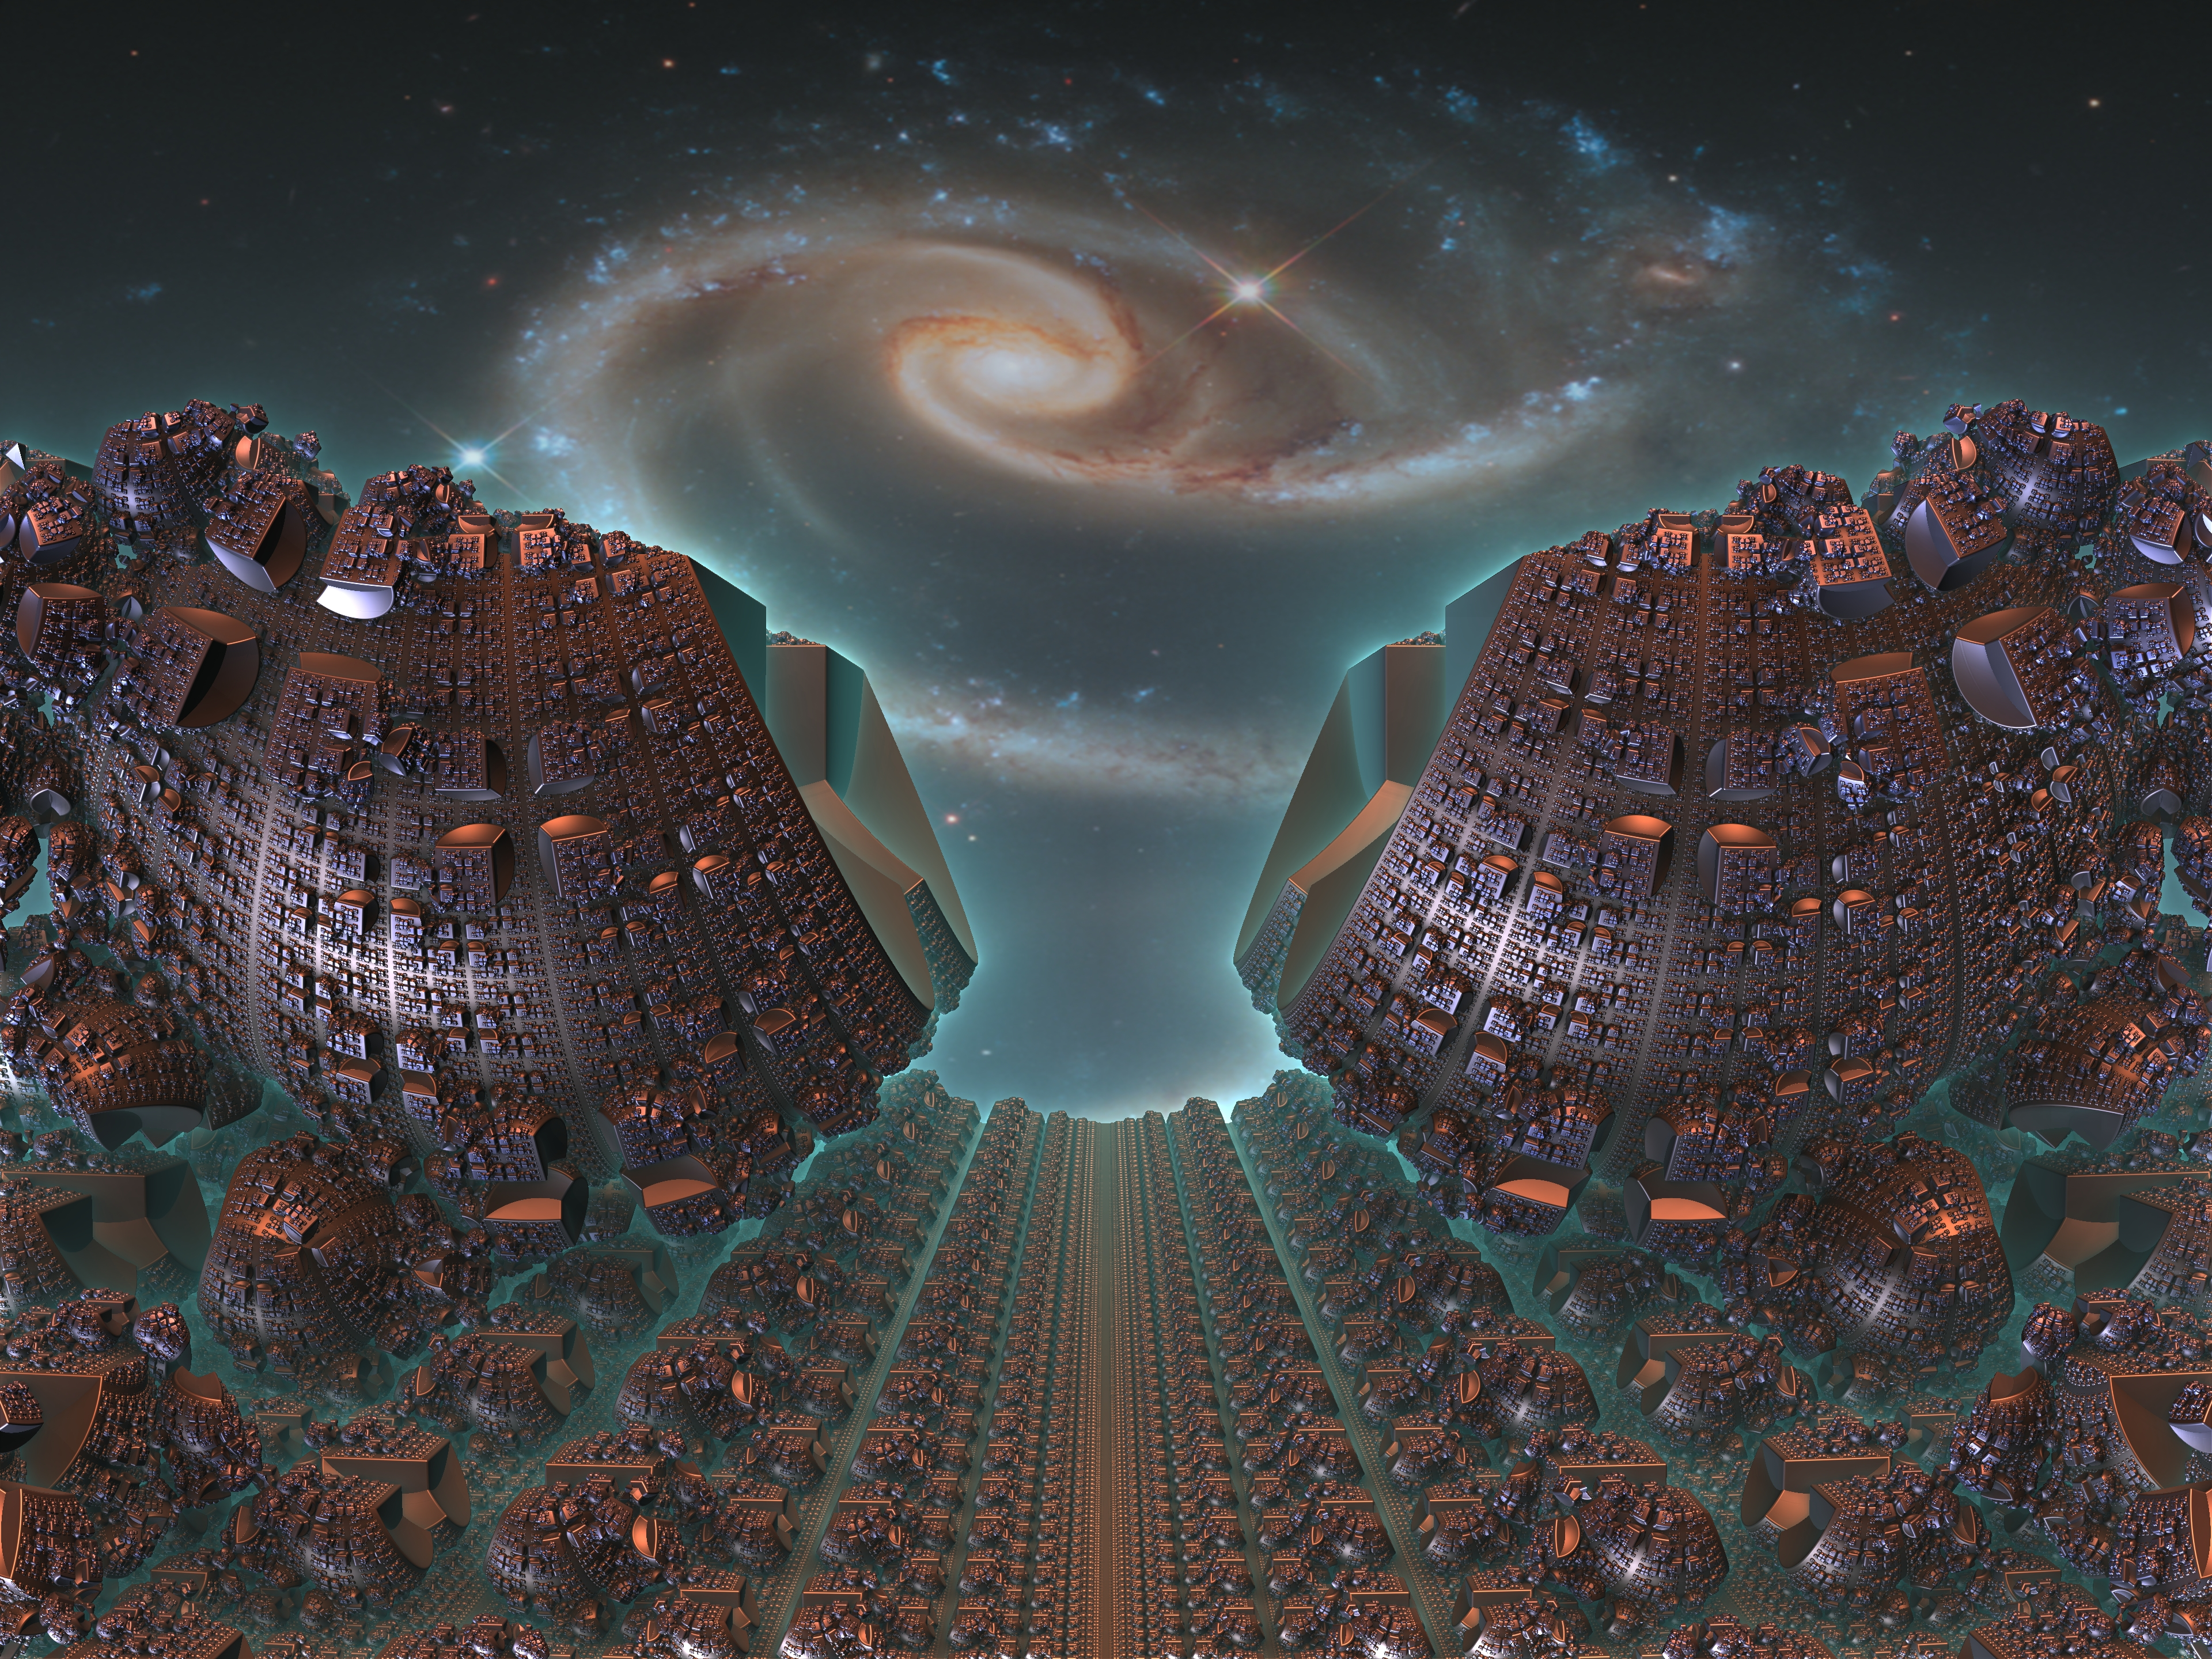 Sci Fi Wallpaper Of The Week 19: Fractals Of The Week: BioFurnace & Stars